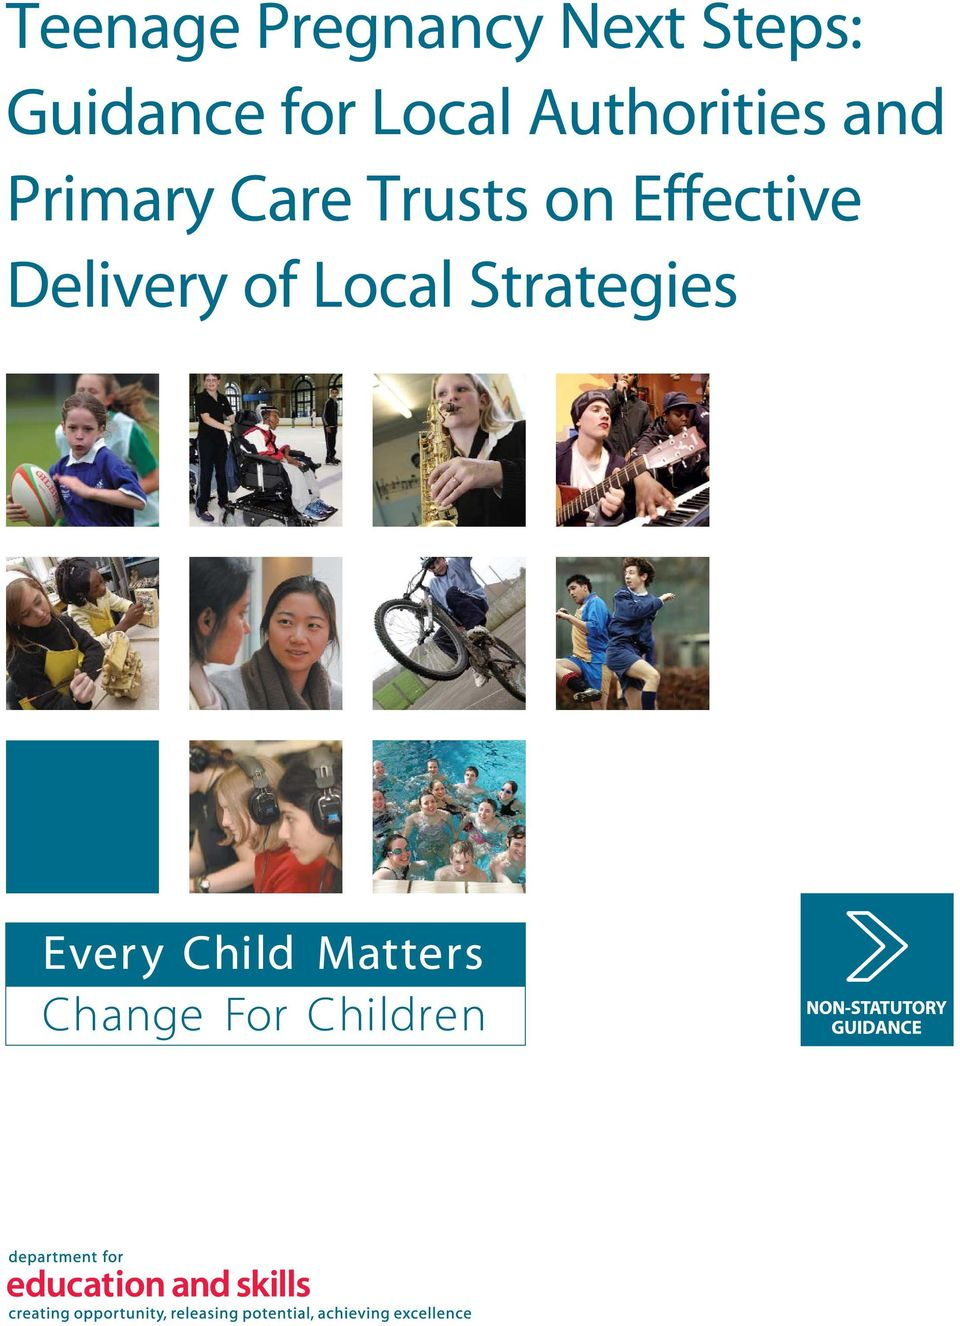 and Primary Care Trusts on